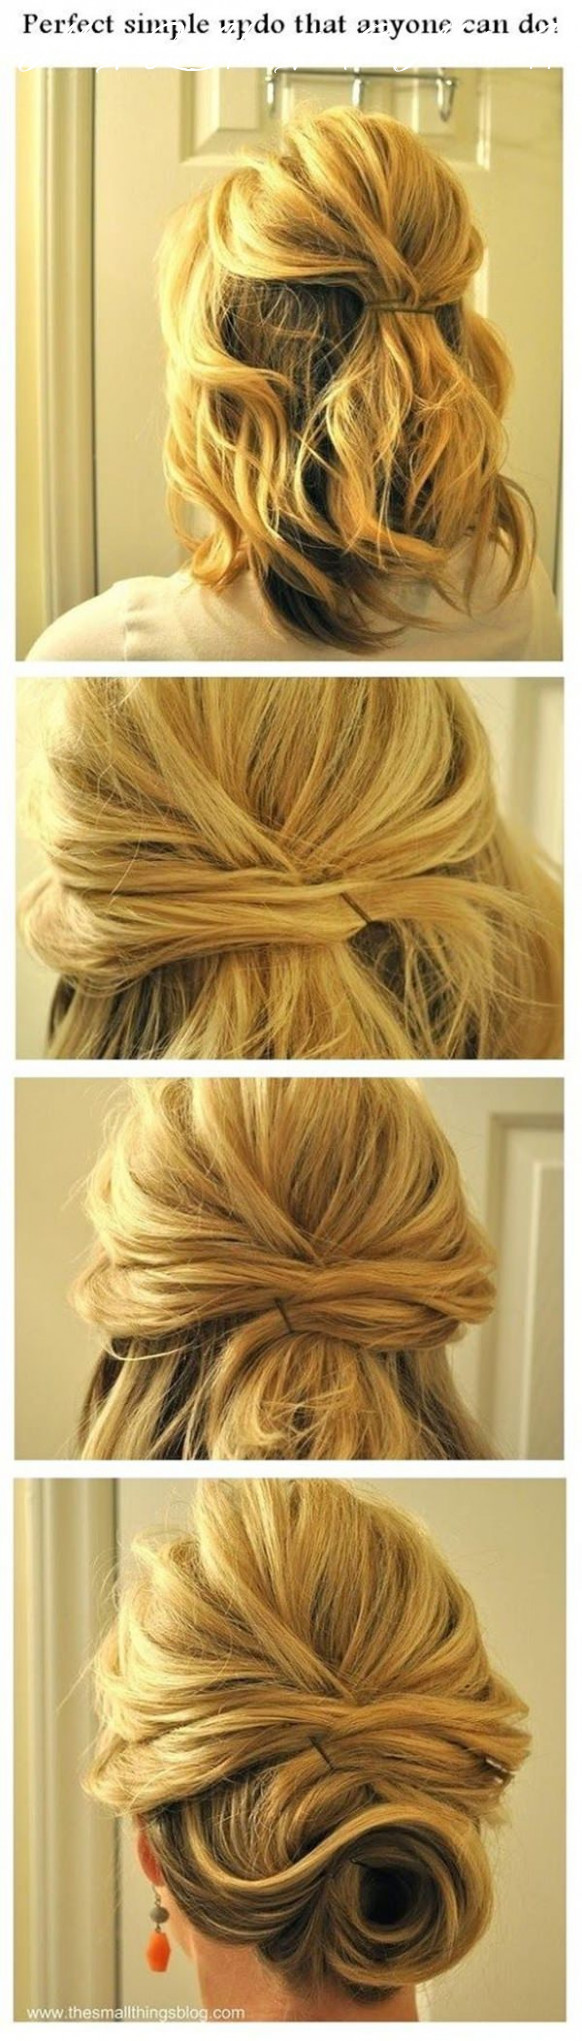 Wondering How To Do A Messy Bun?